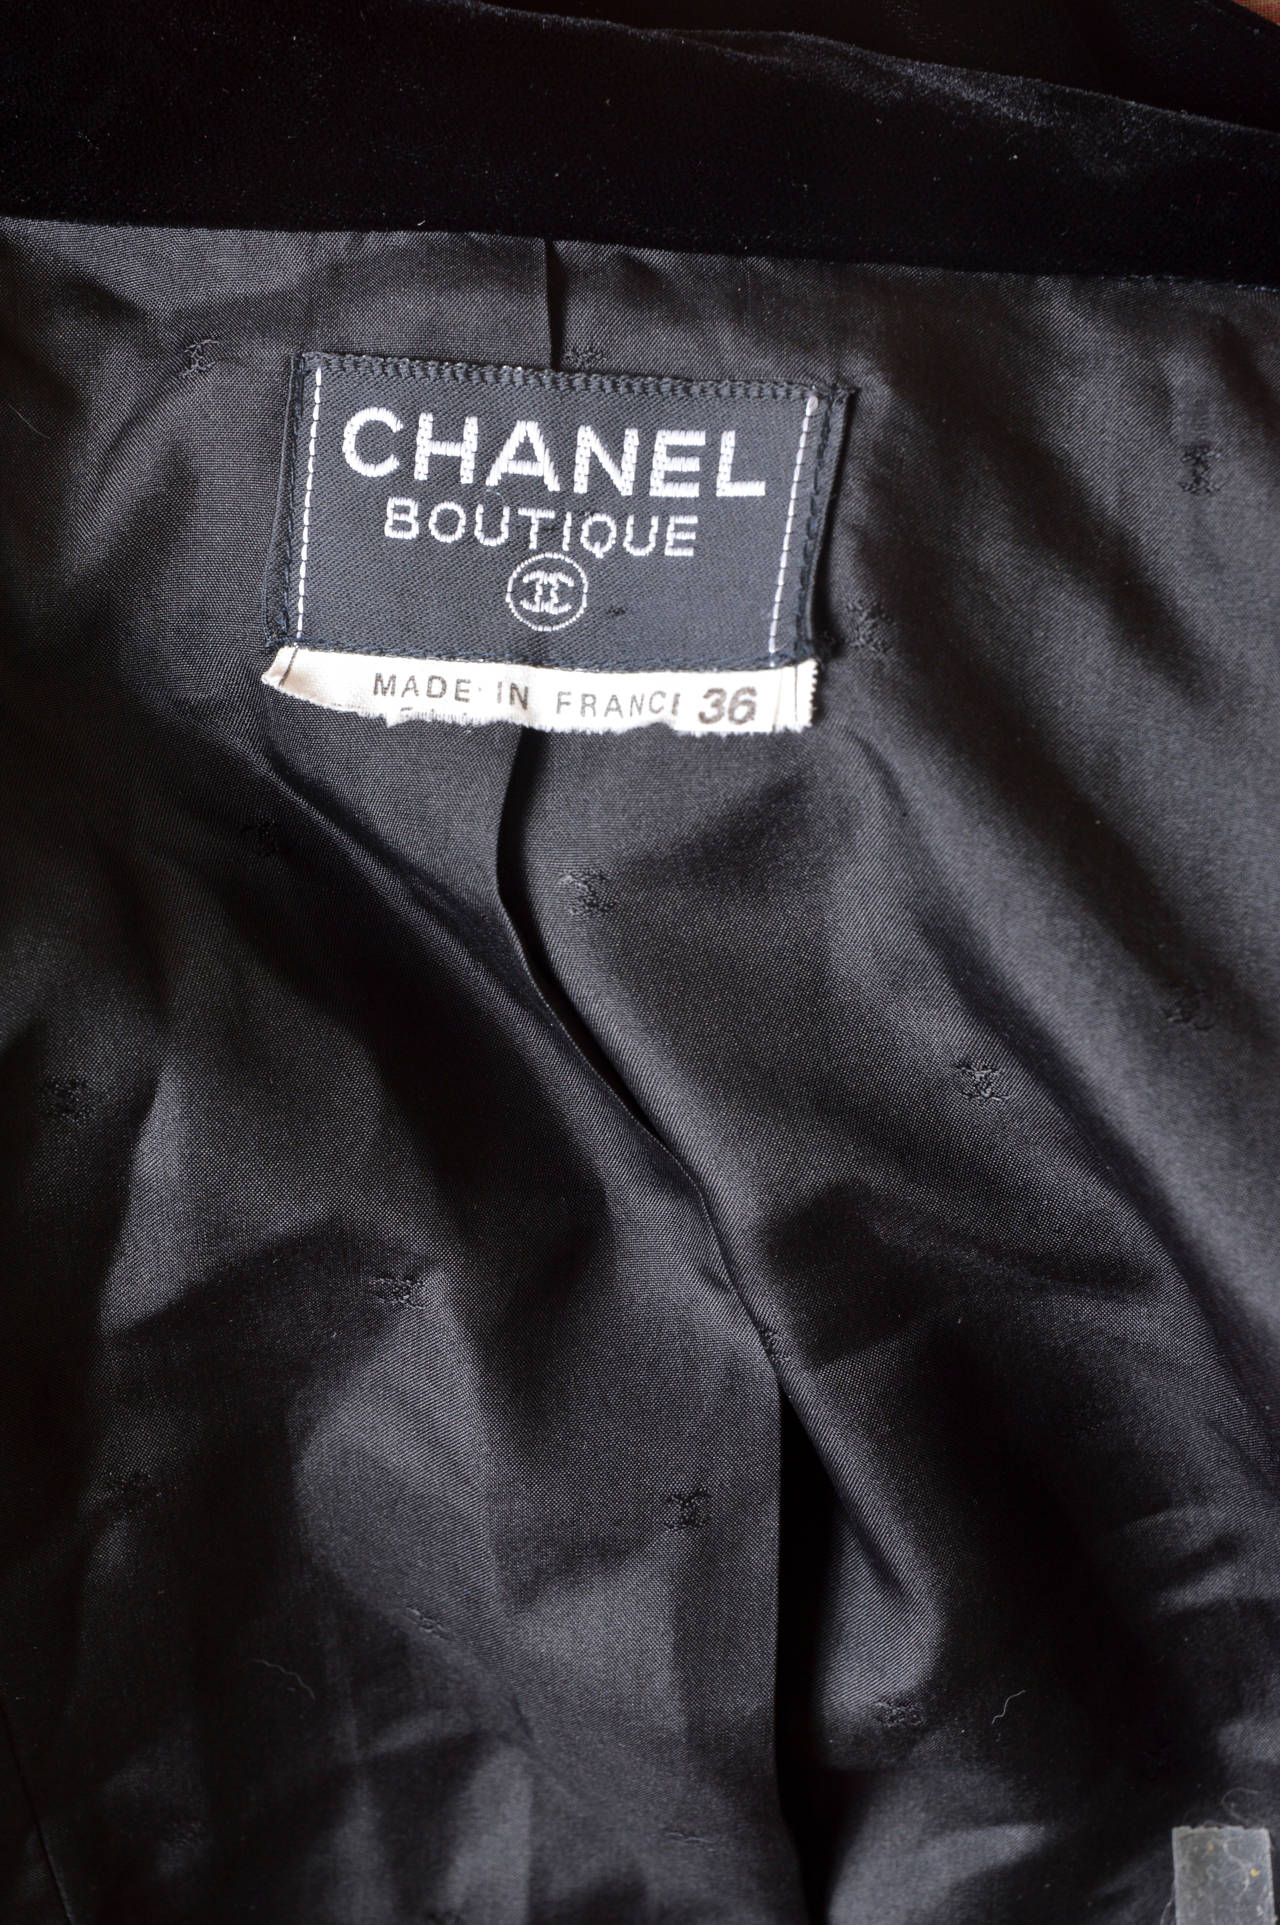 Chanel Boutique Black Velvet Formal Top 7